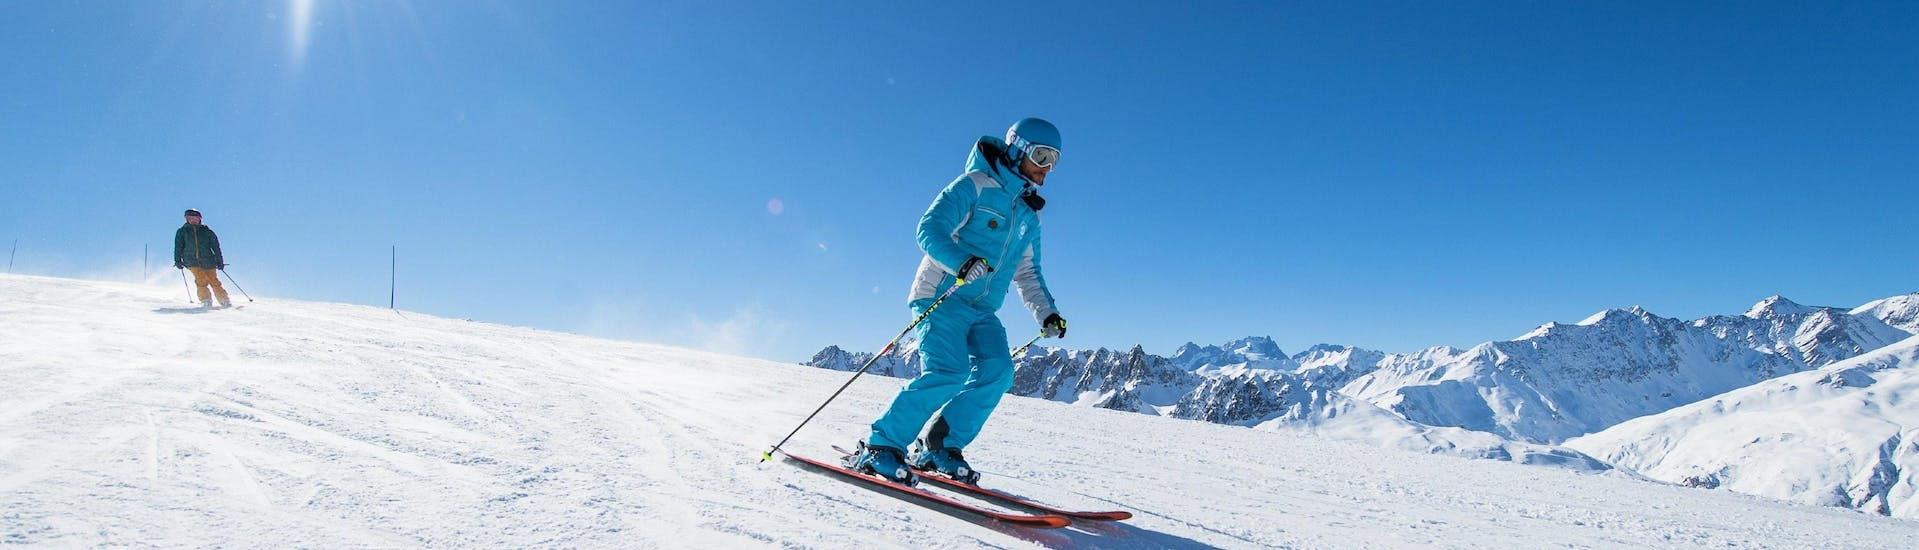 A ski instructor from the ski school ESI Ski Family in Val Thorens is leading the way during Private Ski Lessons for Adults of All Levels - Midday.